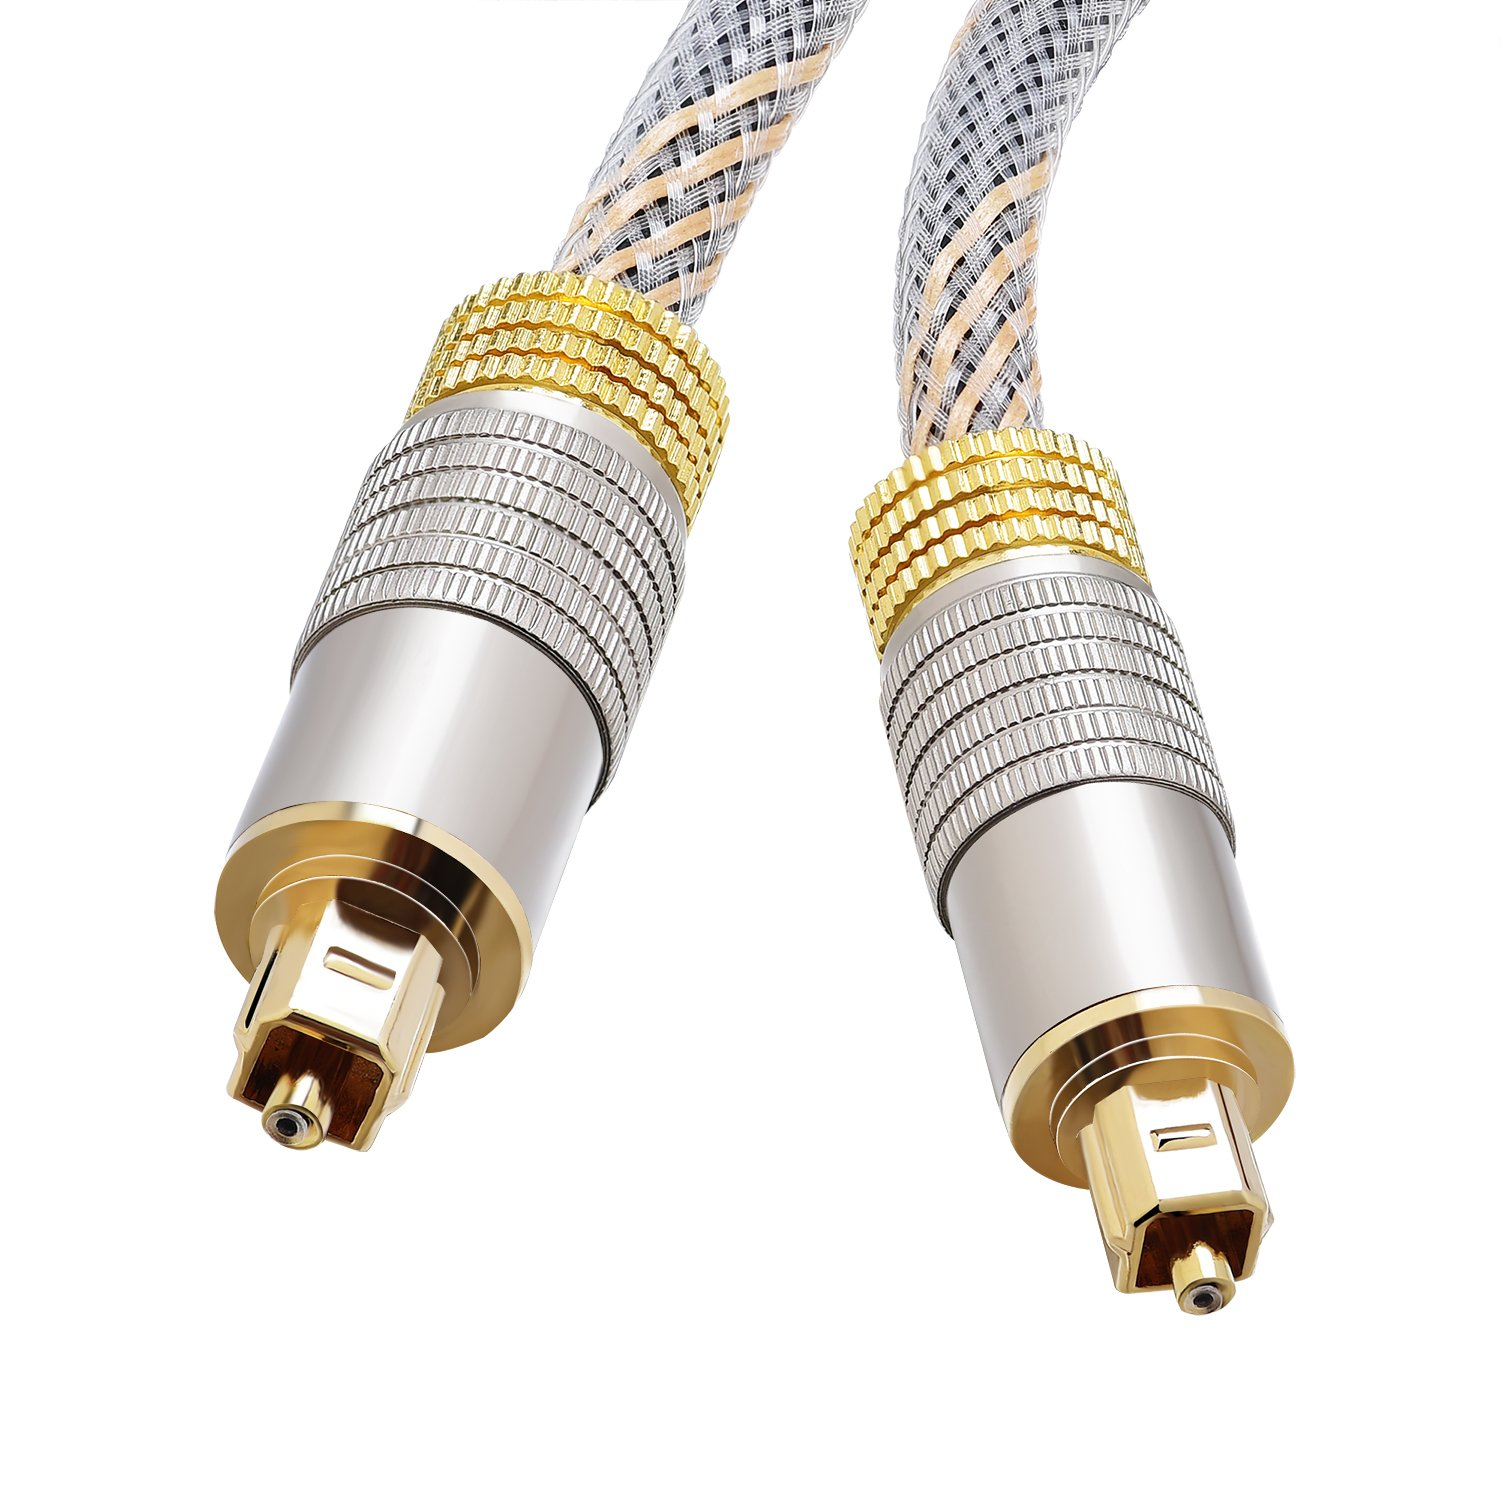 Toslink Cable 6 FT 10FT(Digital optical Audio Cable/Toslink Optical Cable),Home Theater Fiber Optic Gold Plated Male to Male Braided Jacket for Playstation&Xbox-Pro Series (6 Feet) by LPhome